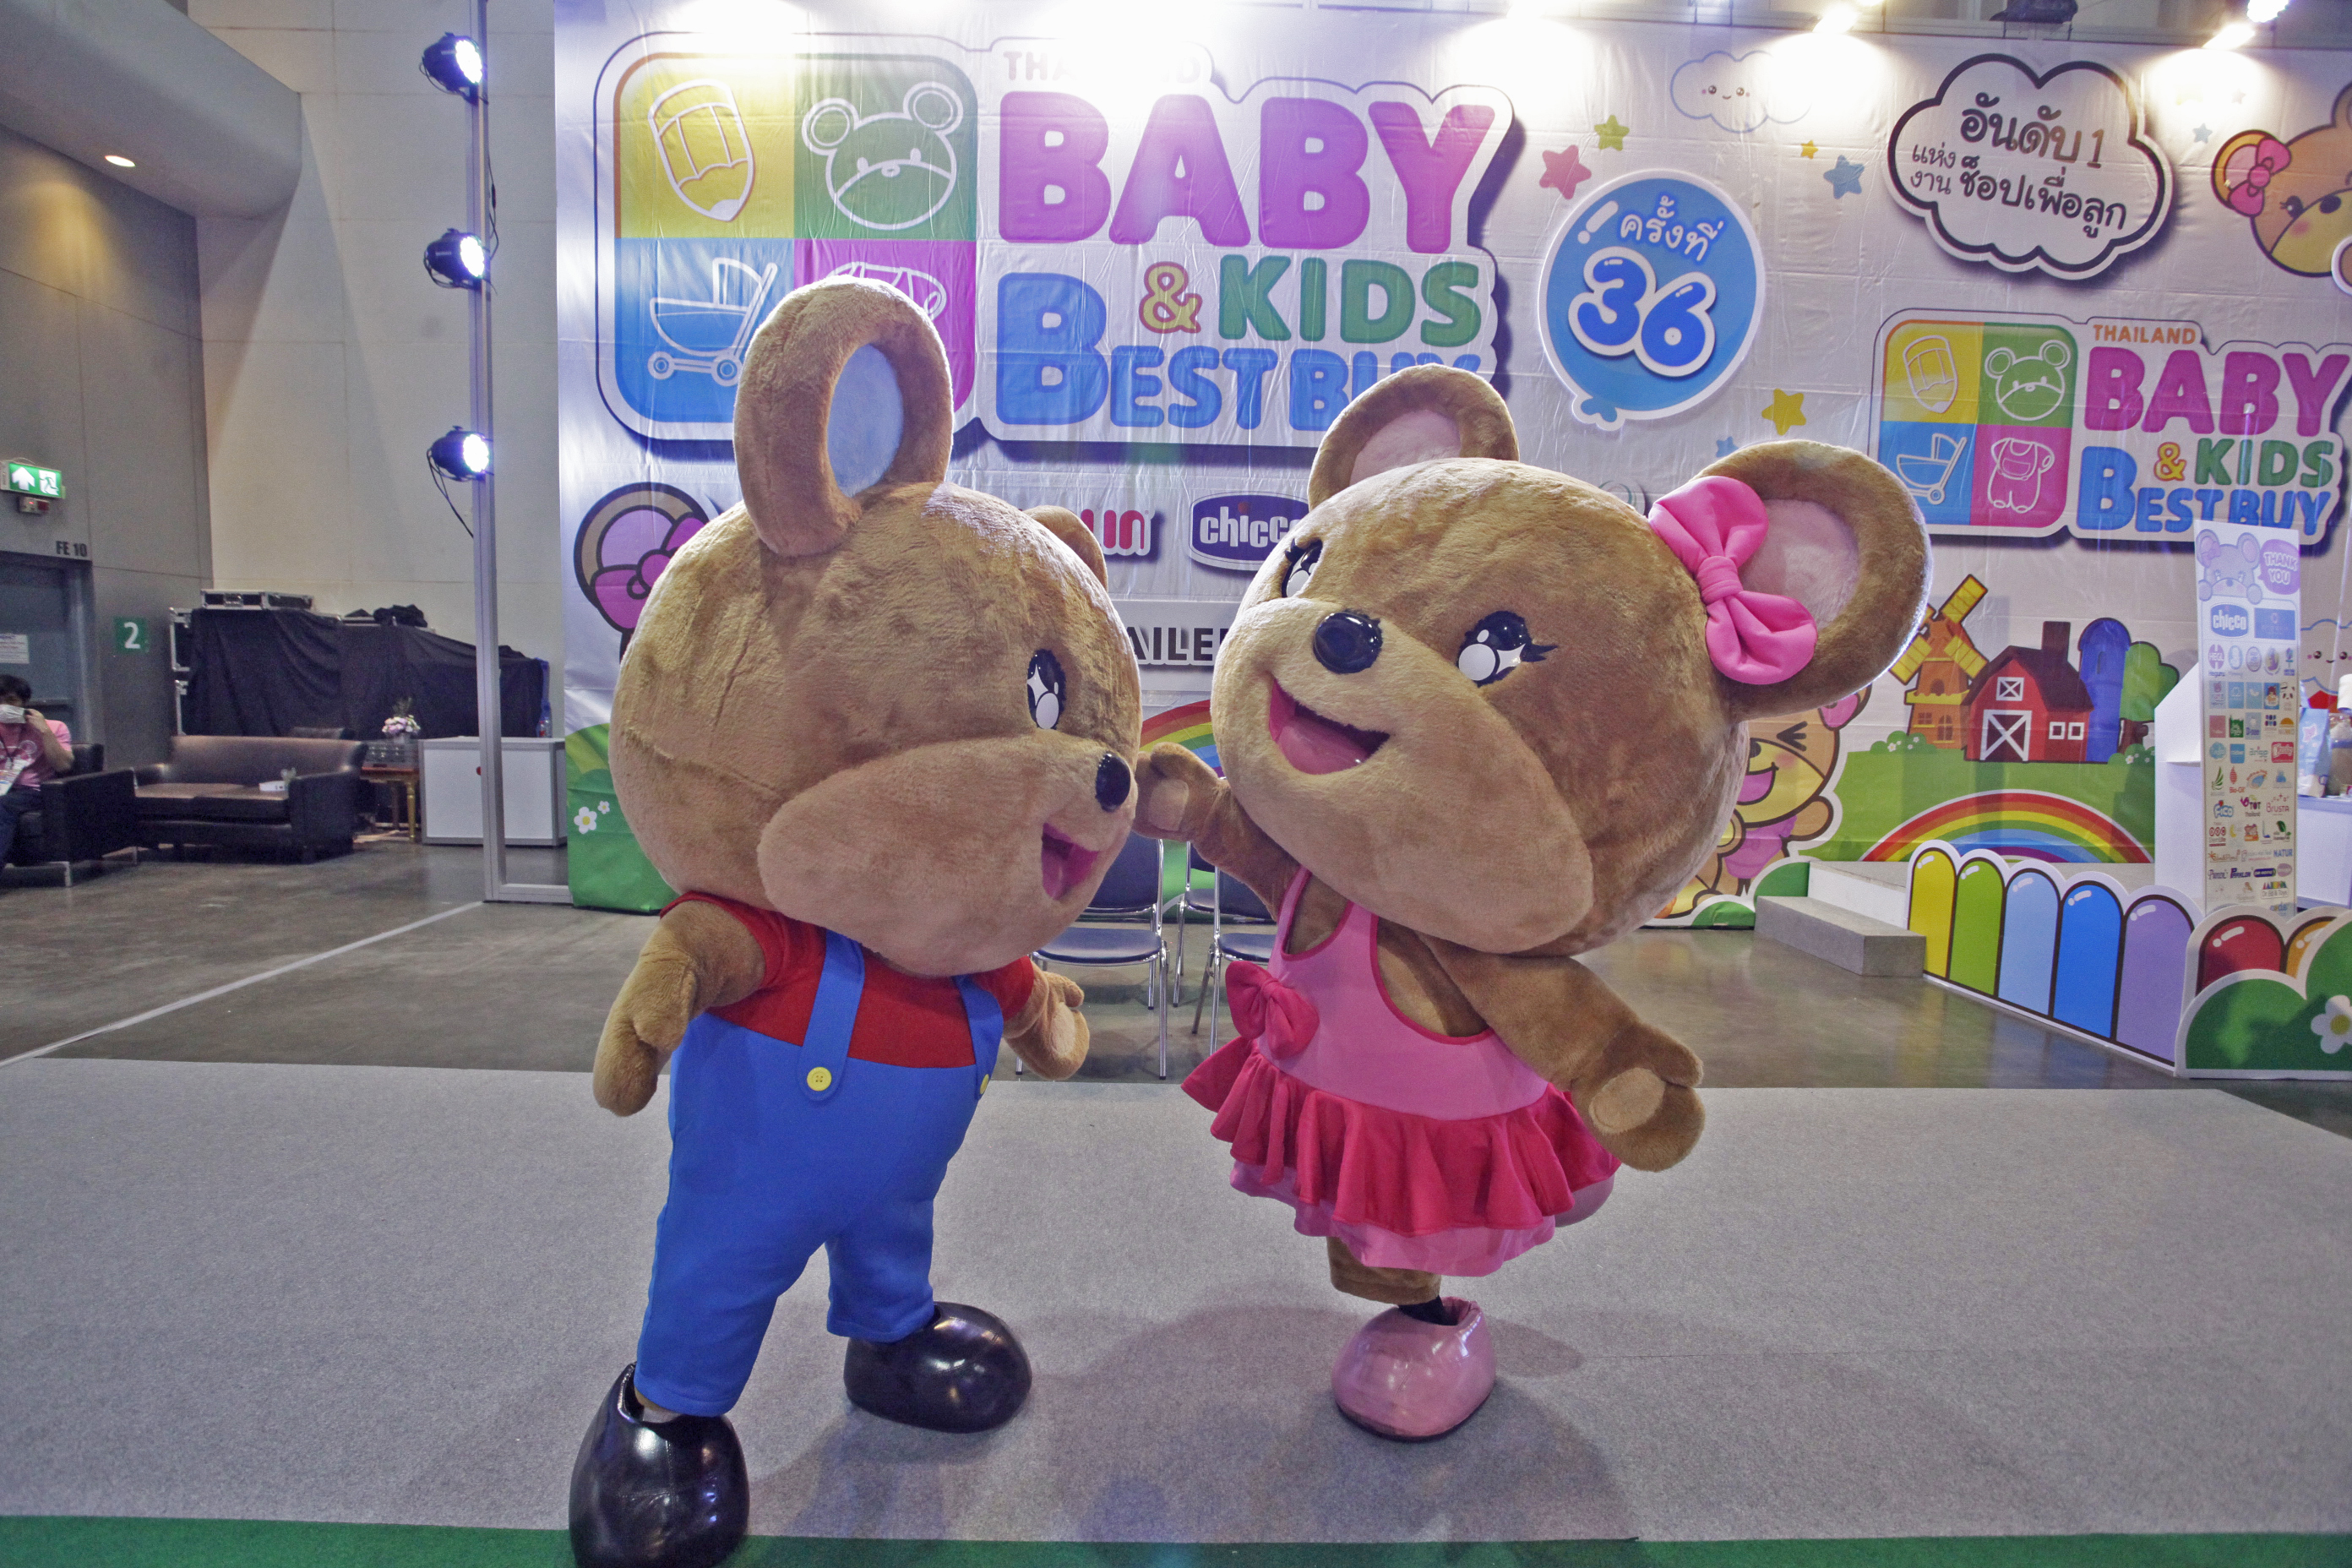 Thailand Baby & Kids Best Buy ครั้งที่ 36